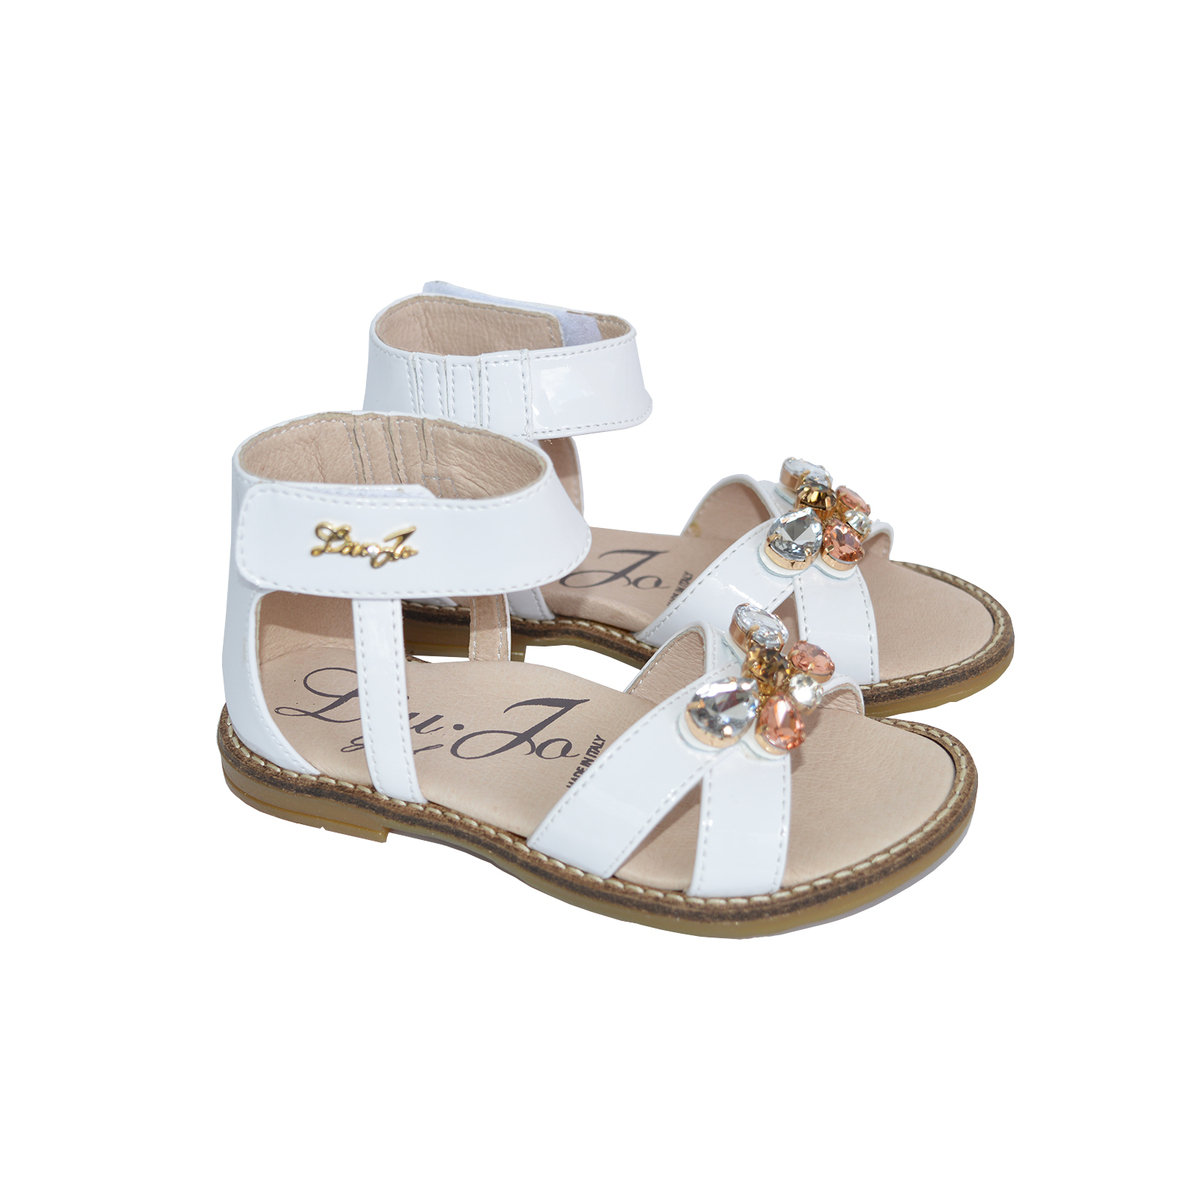 8f6348c52 Baby Girls   Toddlers Patent Leather Sandals With Gems